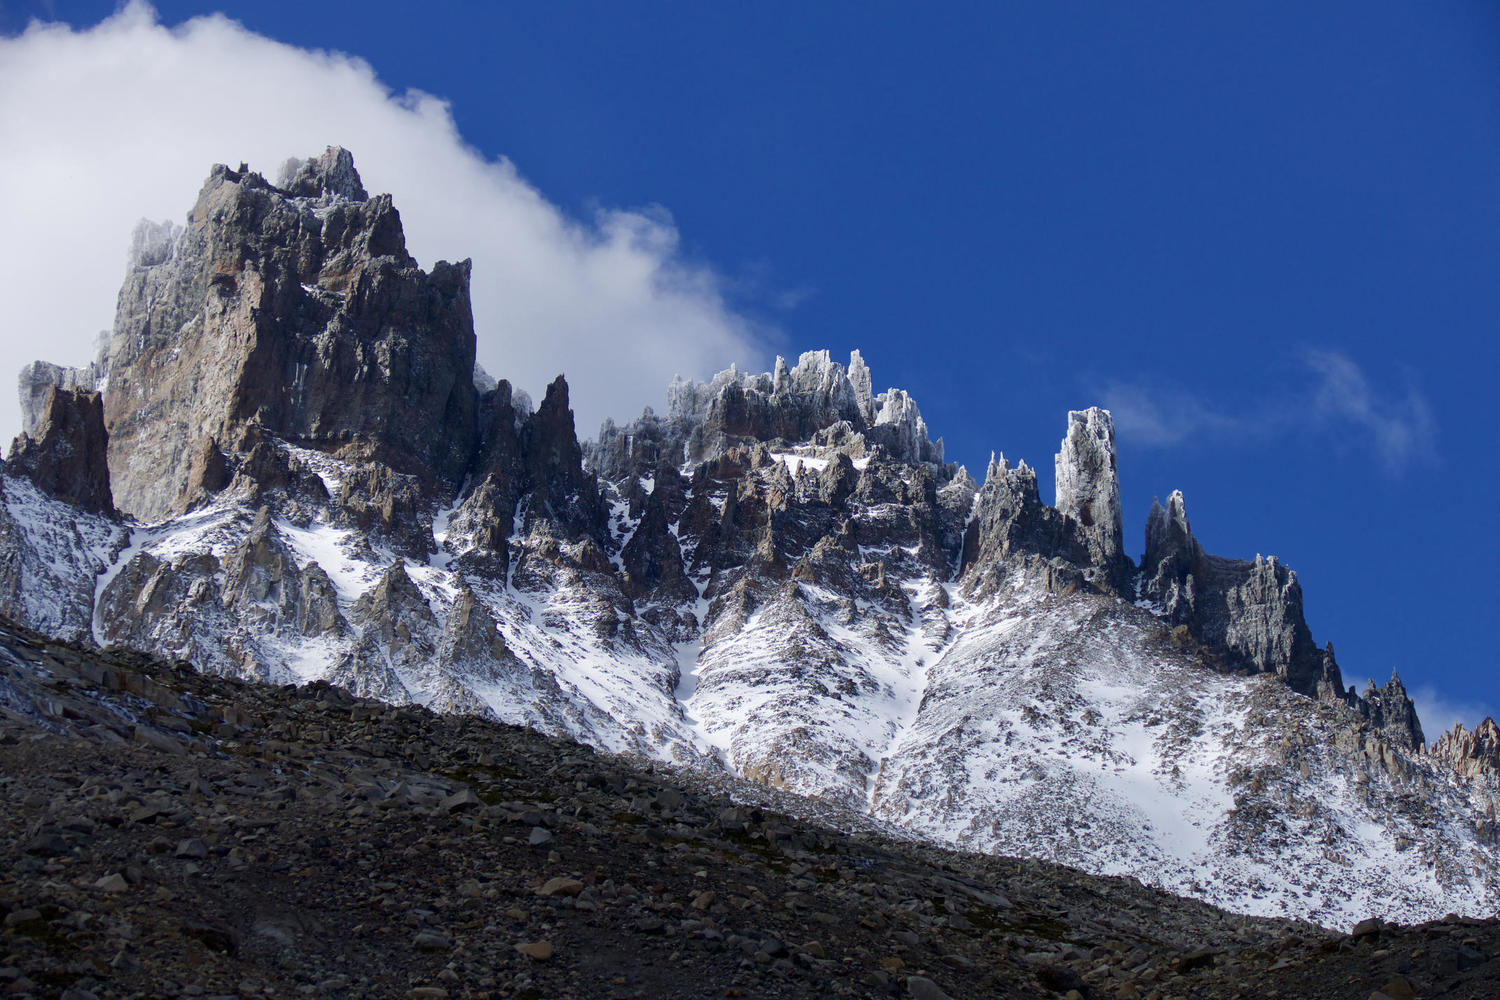 Windy conditions in the high peaks of the Cerro Castillo National Park